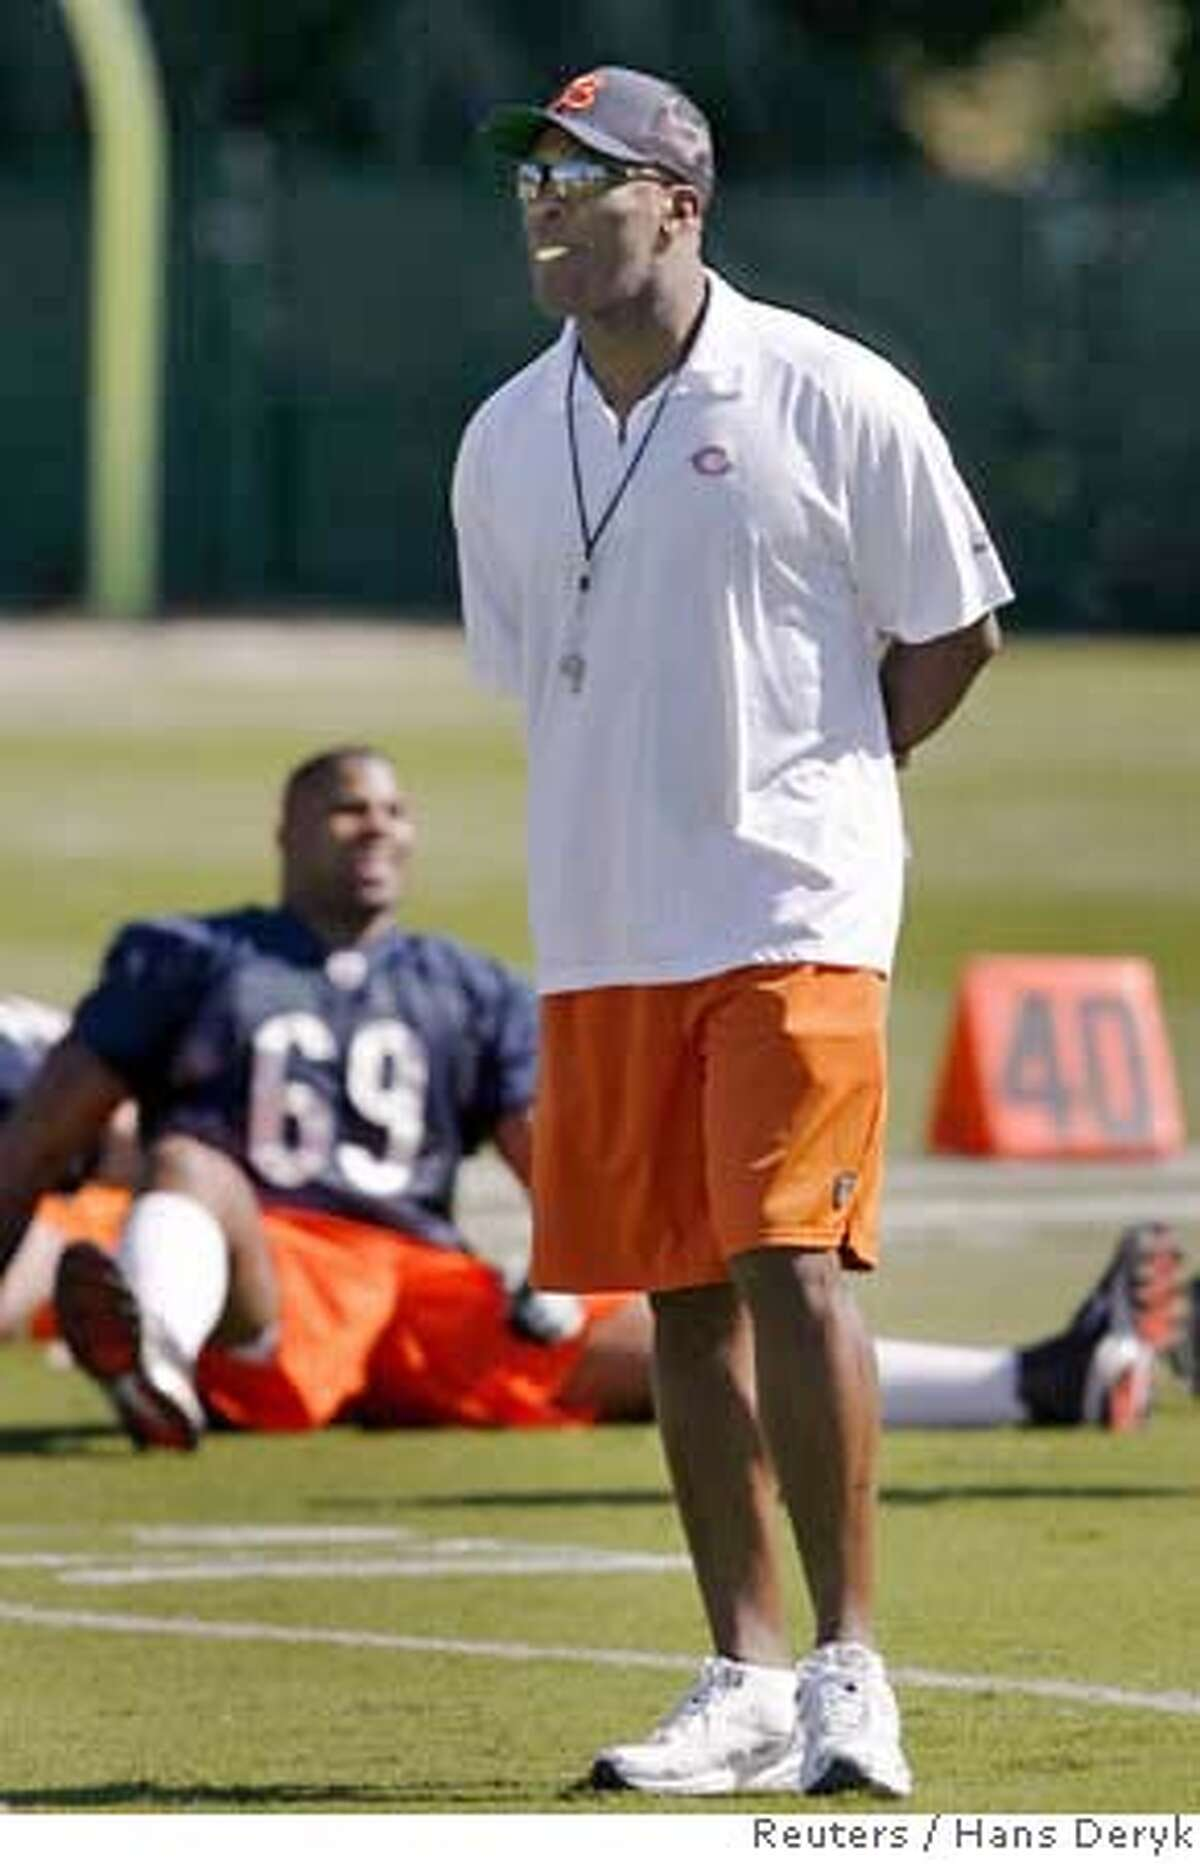 Chicago Bears head coach Lovie Smith watches his team stretch during their first practice at University of Miami campus in Coral Gables, Florida January 29, 2007. The Bears are preparing for Super Bowl XLI against the Indianapolis Colts on February 4. REUTERS/Hans Deryk (UNITED STATES)